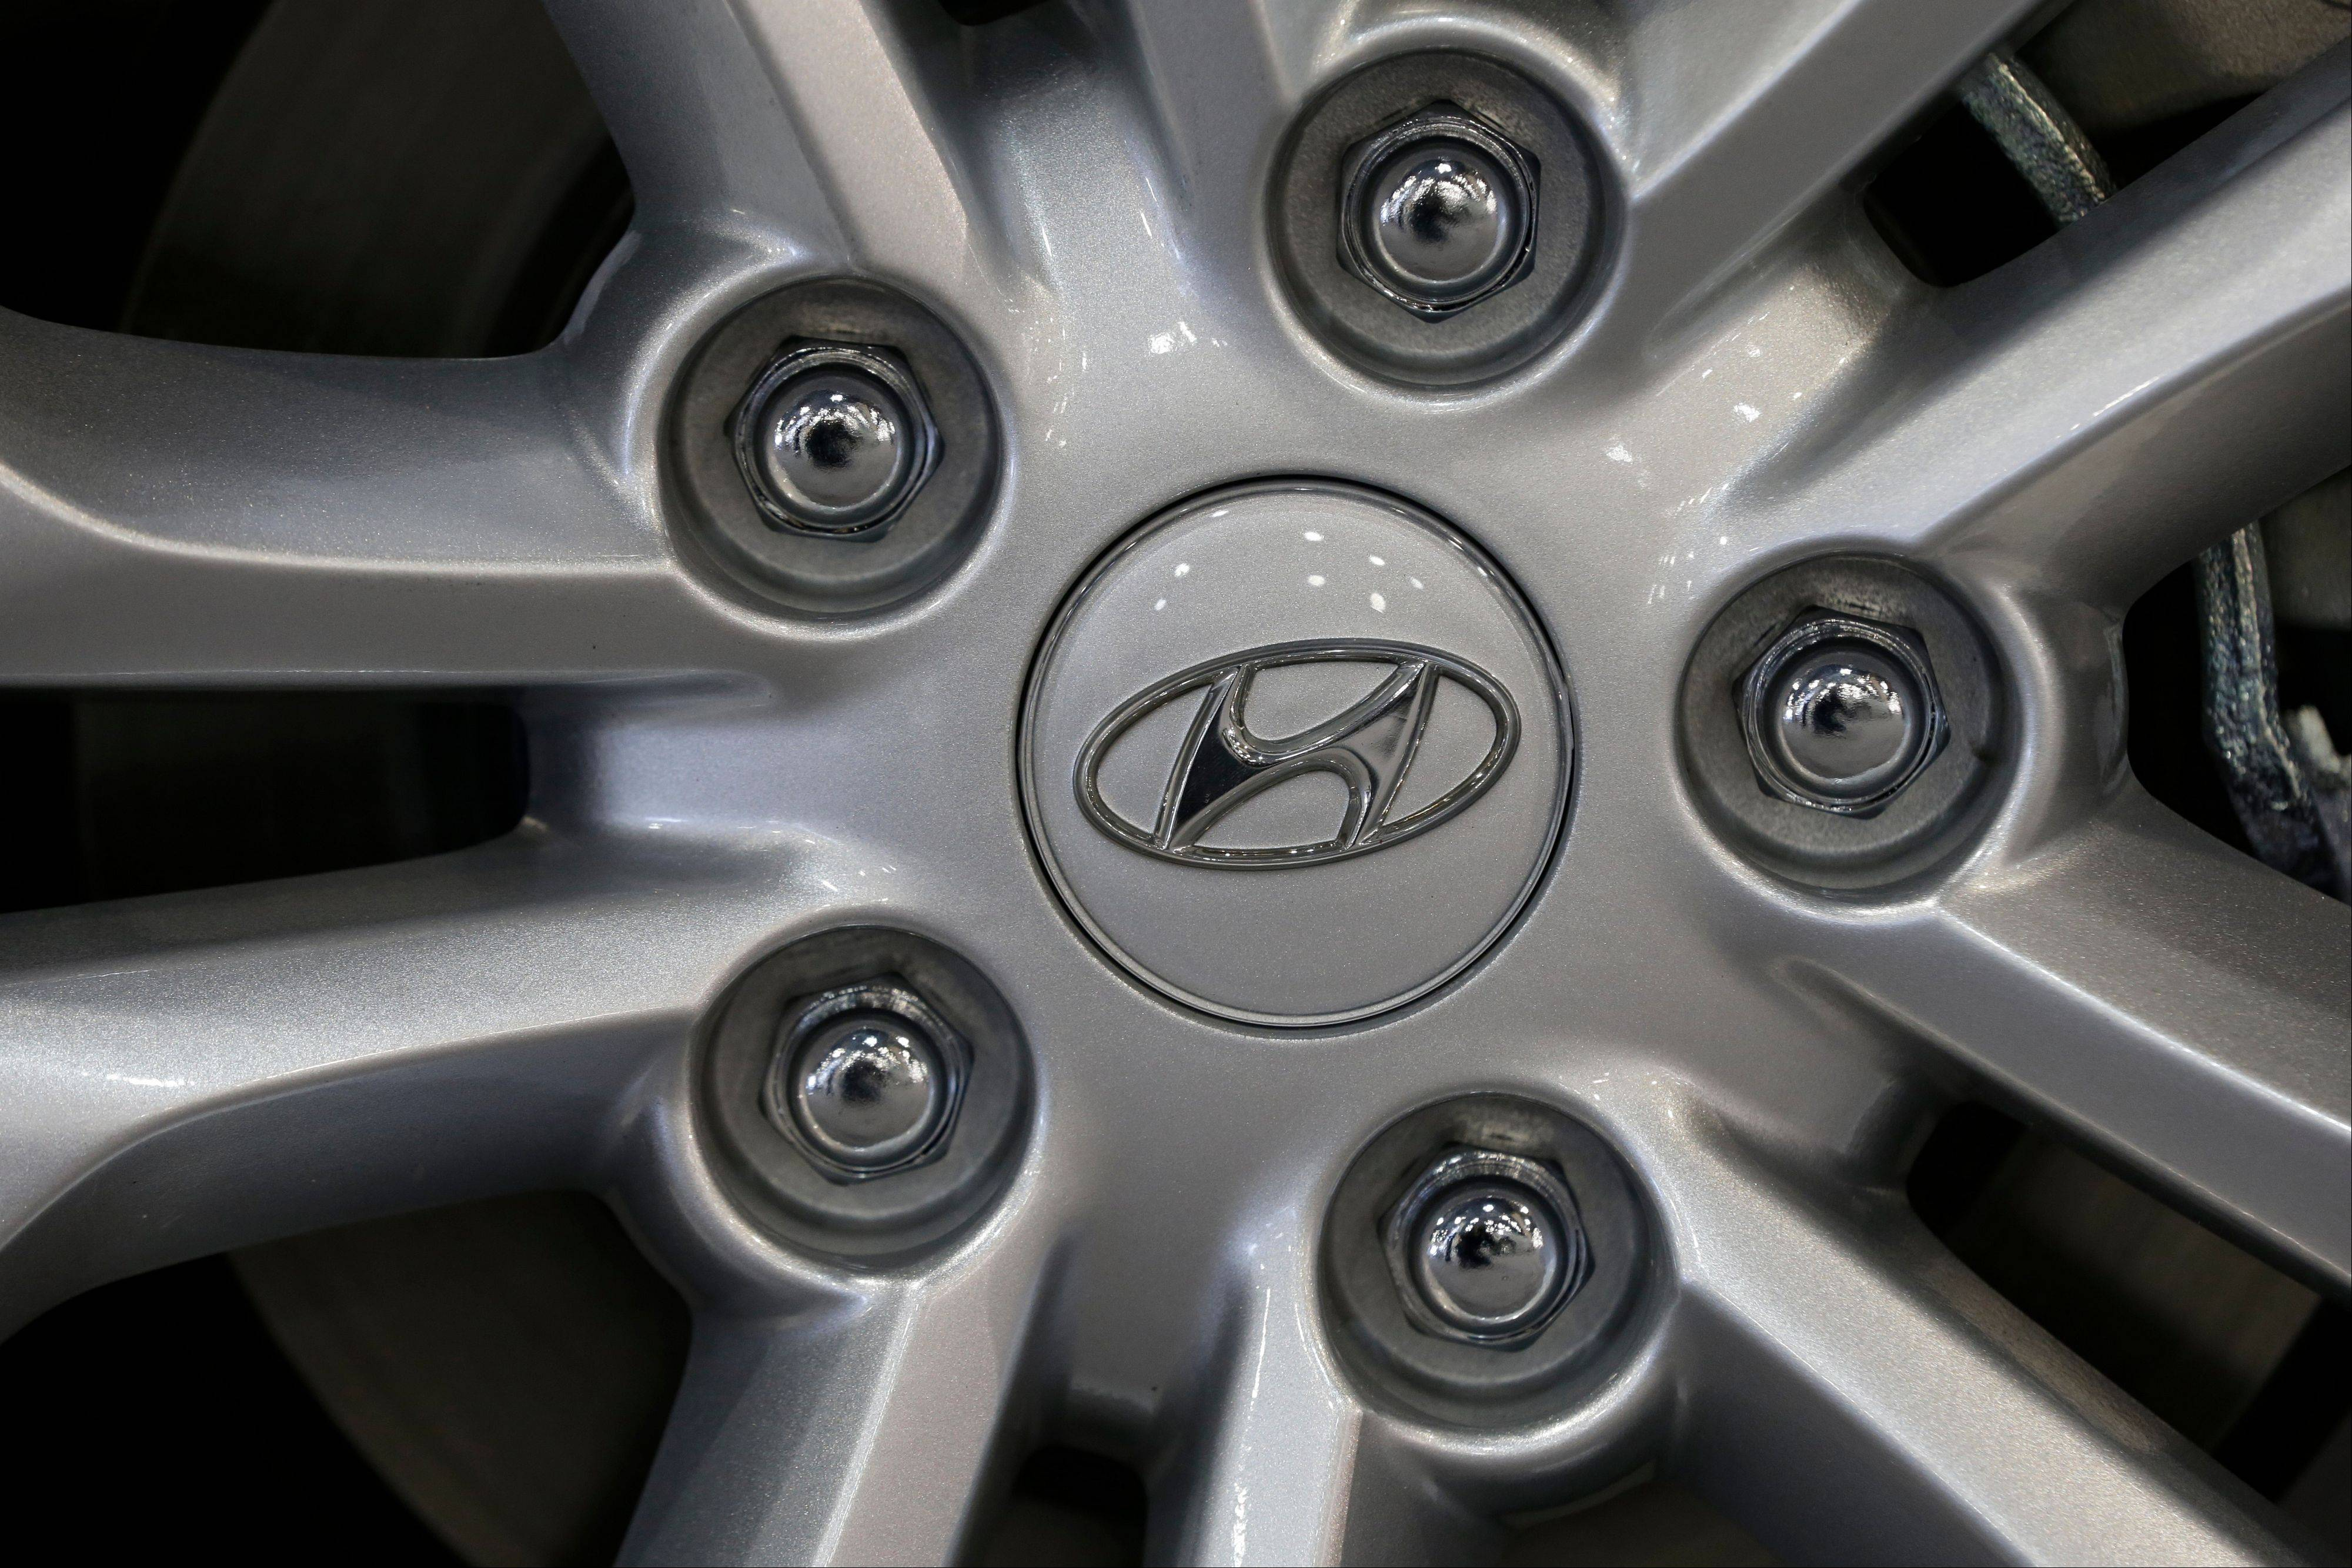 Hyundai Motor Co., South Korea�s biggest automaker, reported a steeper profit drop than analysts estimated after the won appreciated more than any major currency, reducing the value of overseas sales. The stock fell.